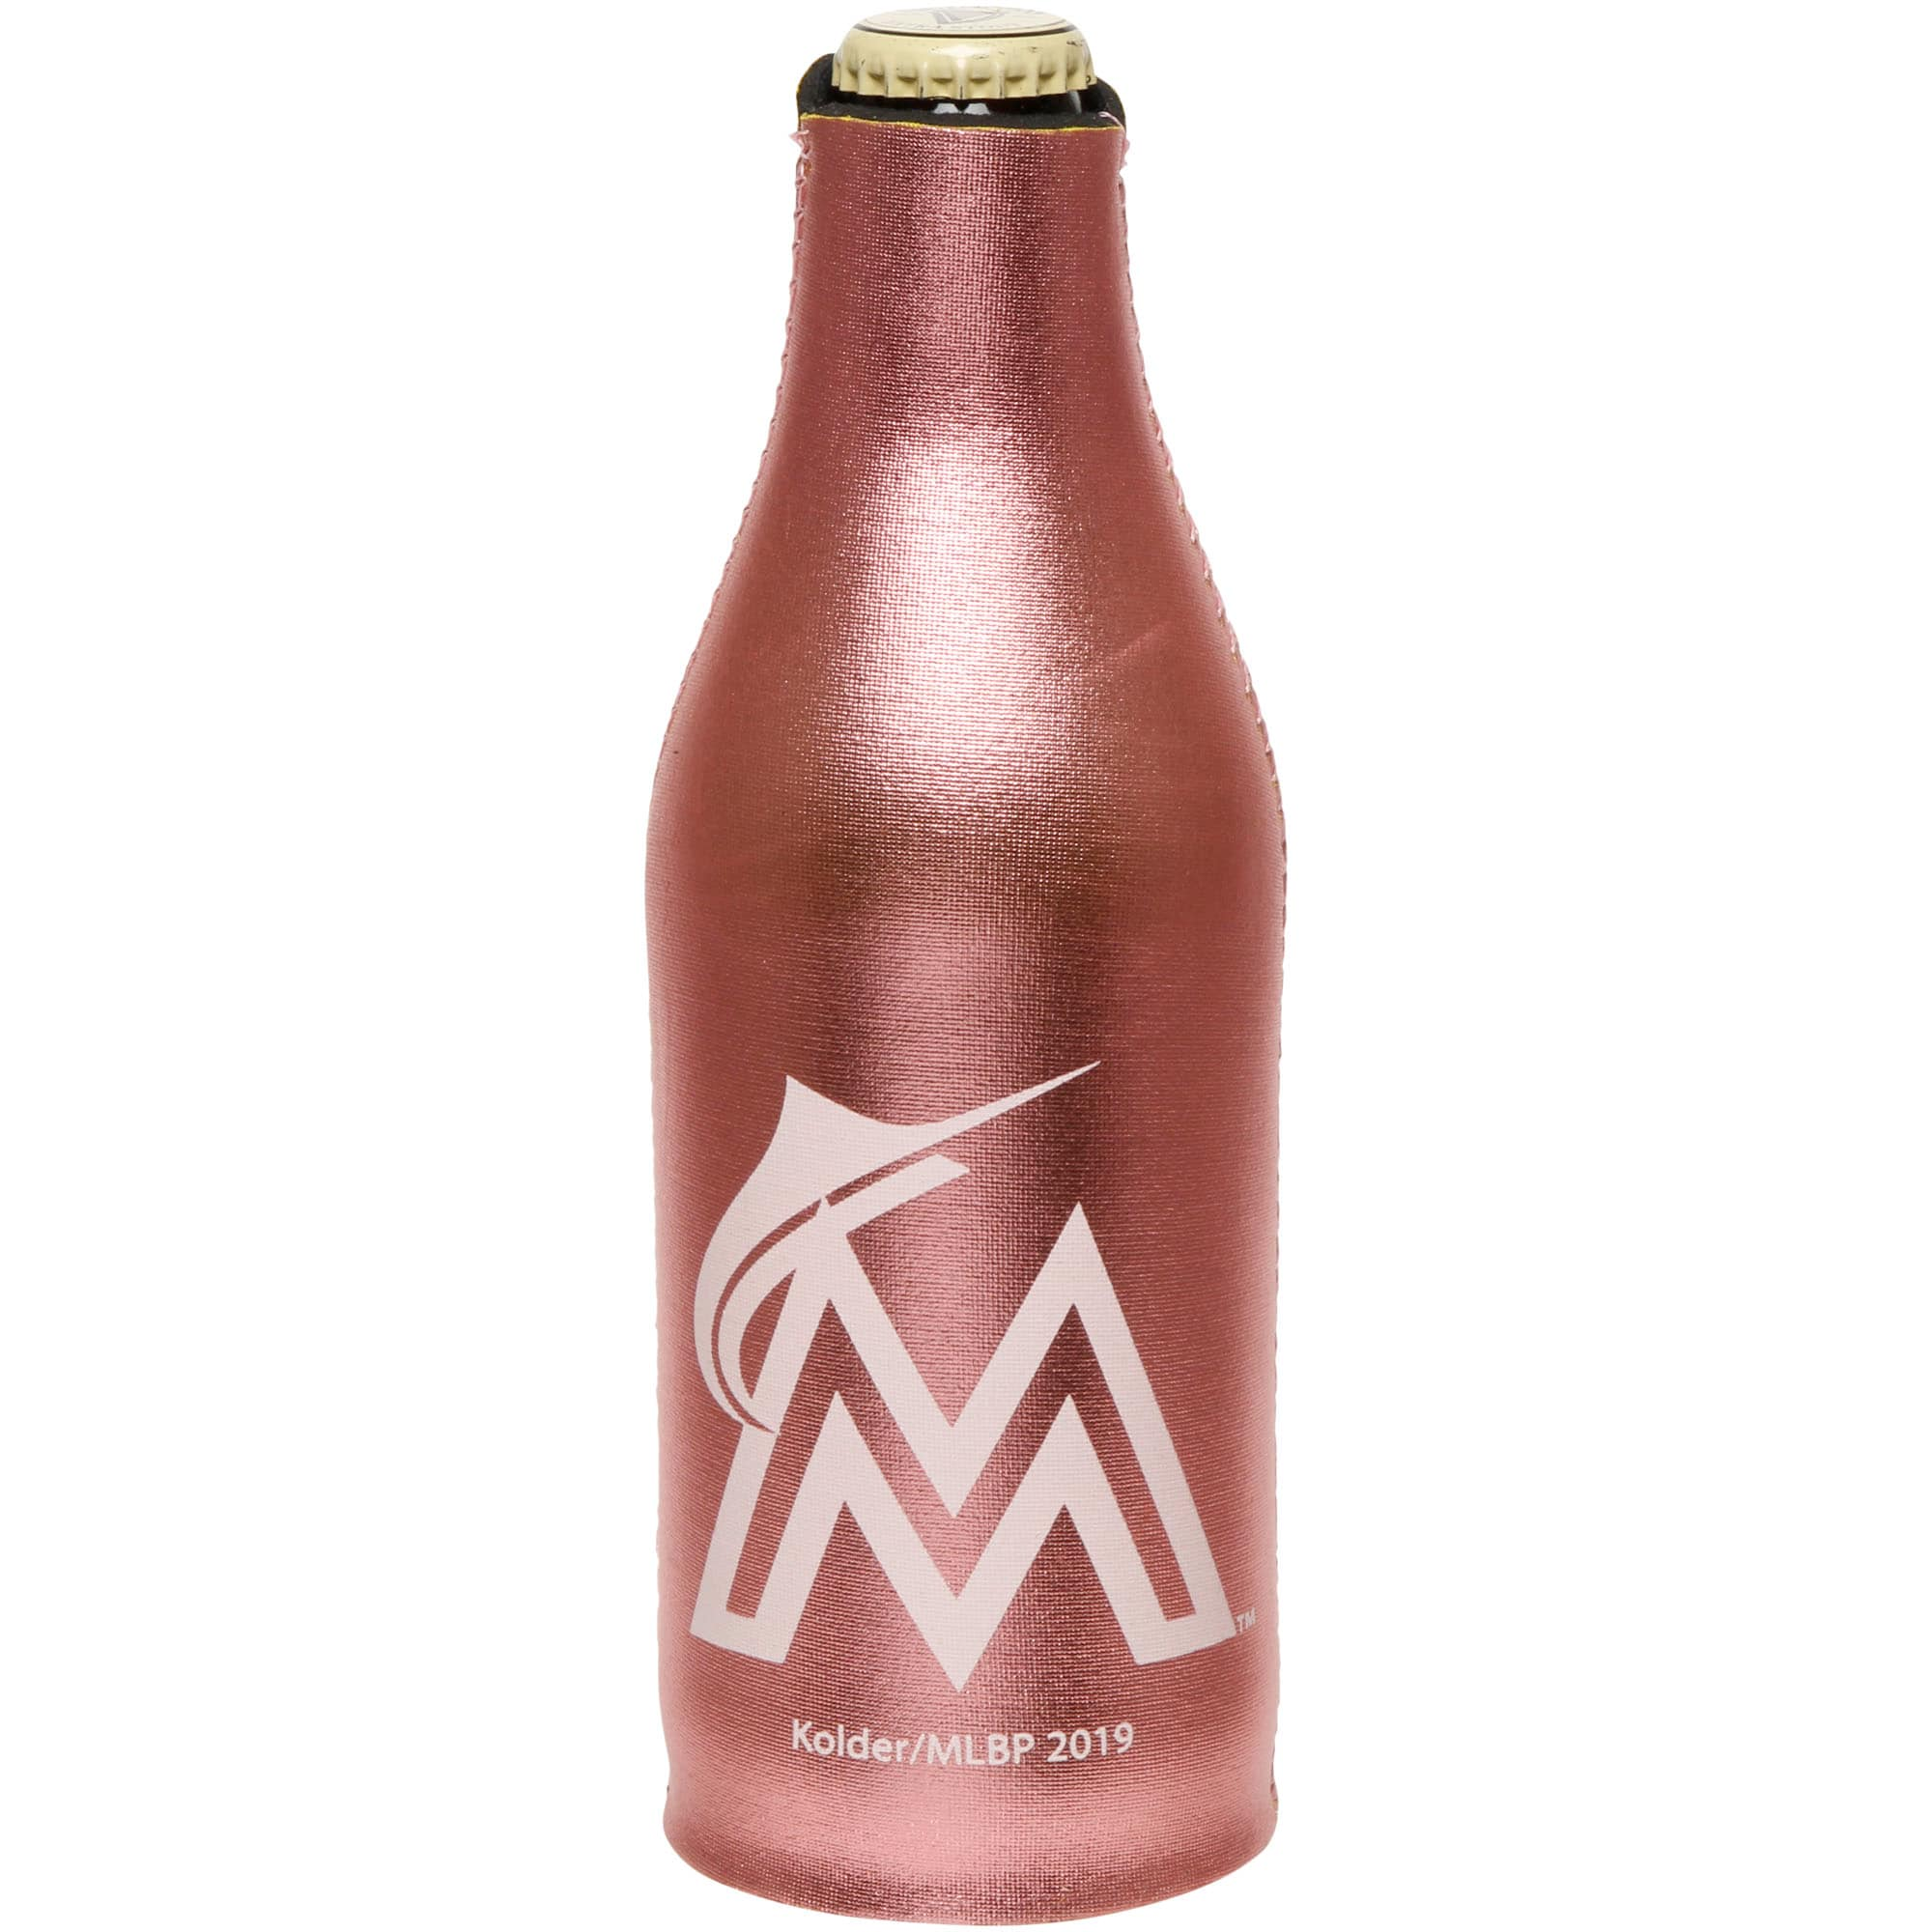 Miami Marlins 12oz. Rose Gold Bottle Cooler